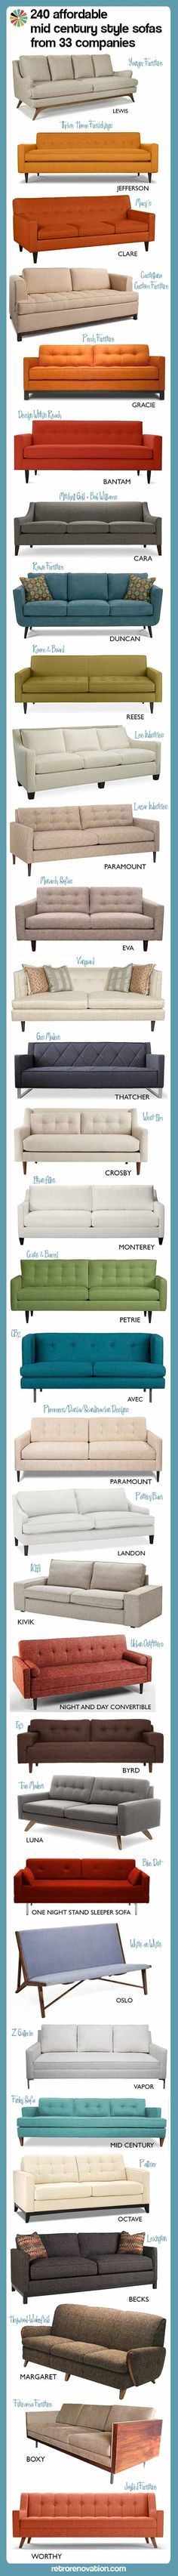 240 Affordable Mid Century Modern Style Sofas From 33 Companies  ~ Affordable Mid Century Sofa